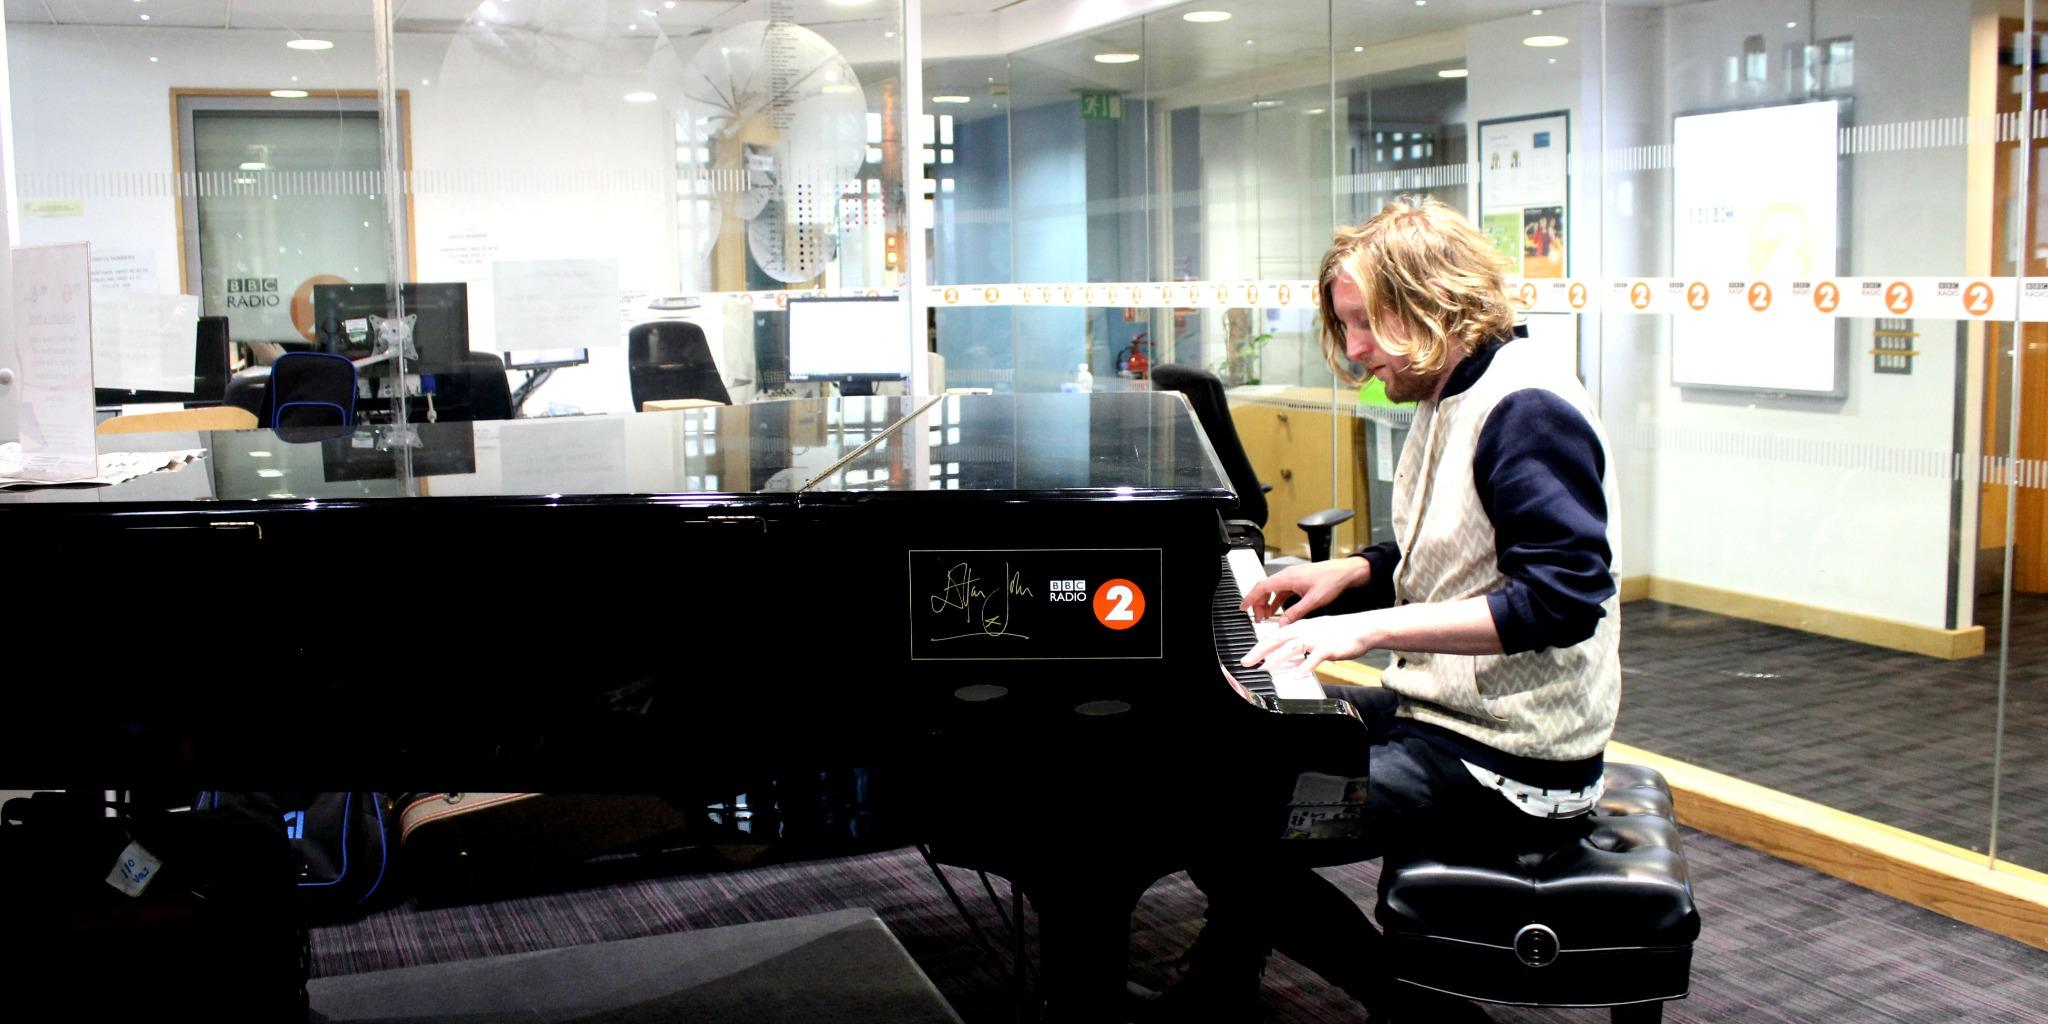 RT @BBCRadio2: Here's @andywburrows warming up on the @eltonjohndotcom piano - he's playing Circle of Life! http://t.co/AVMxKalHlY